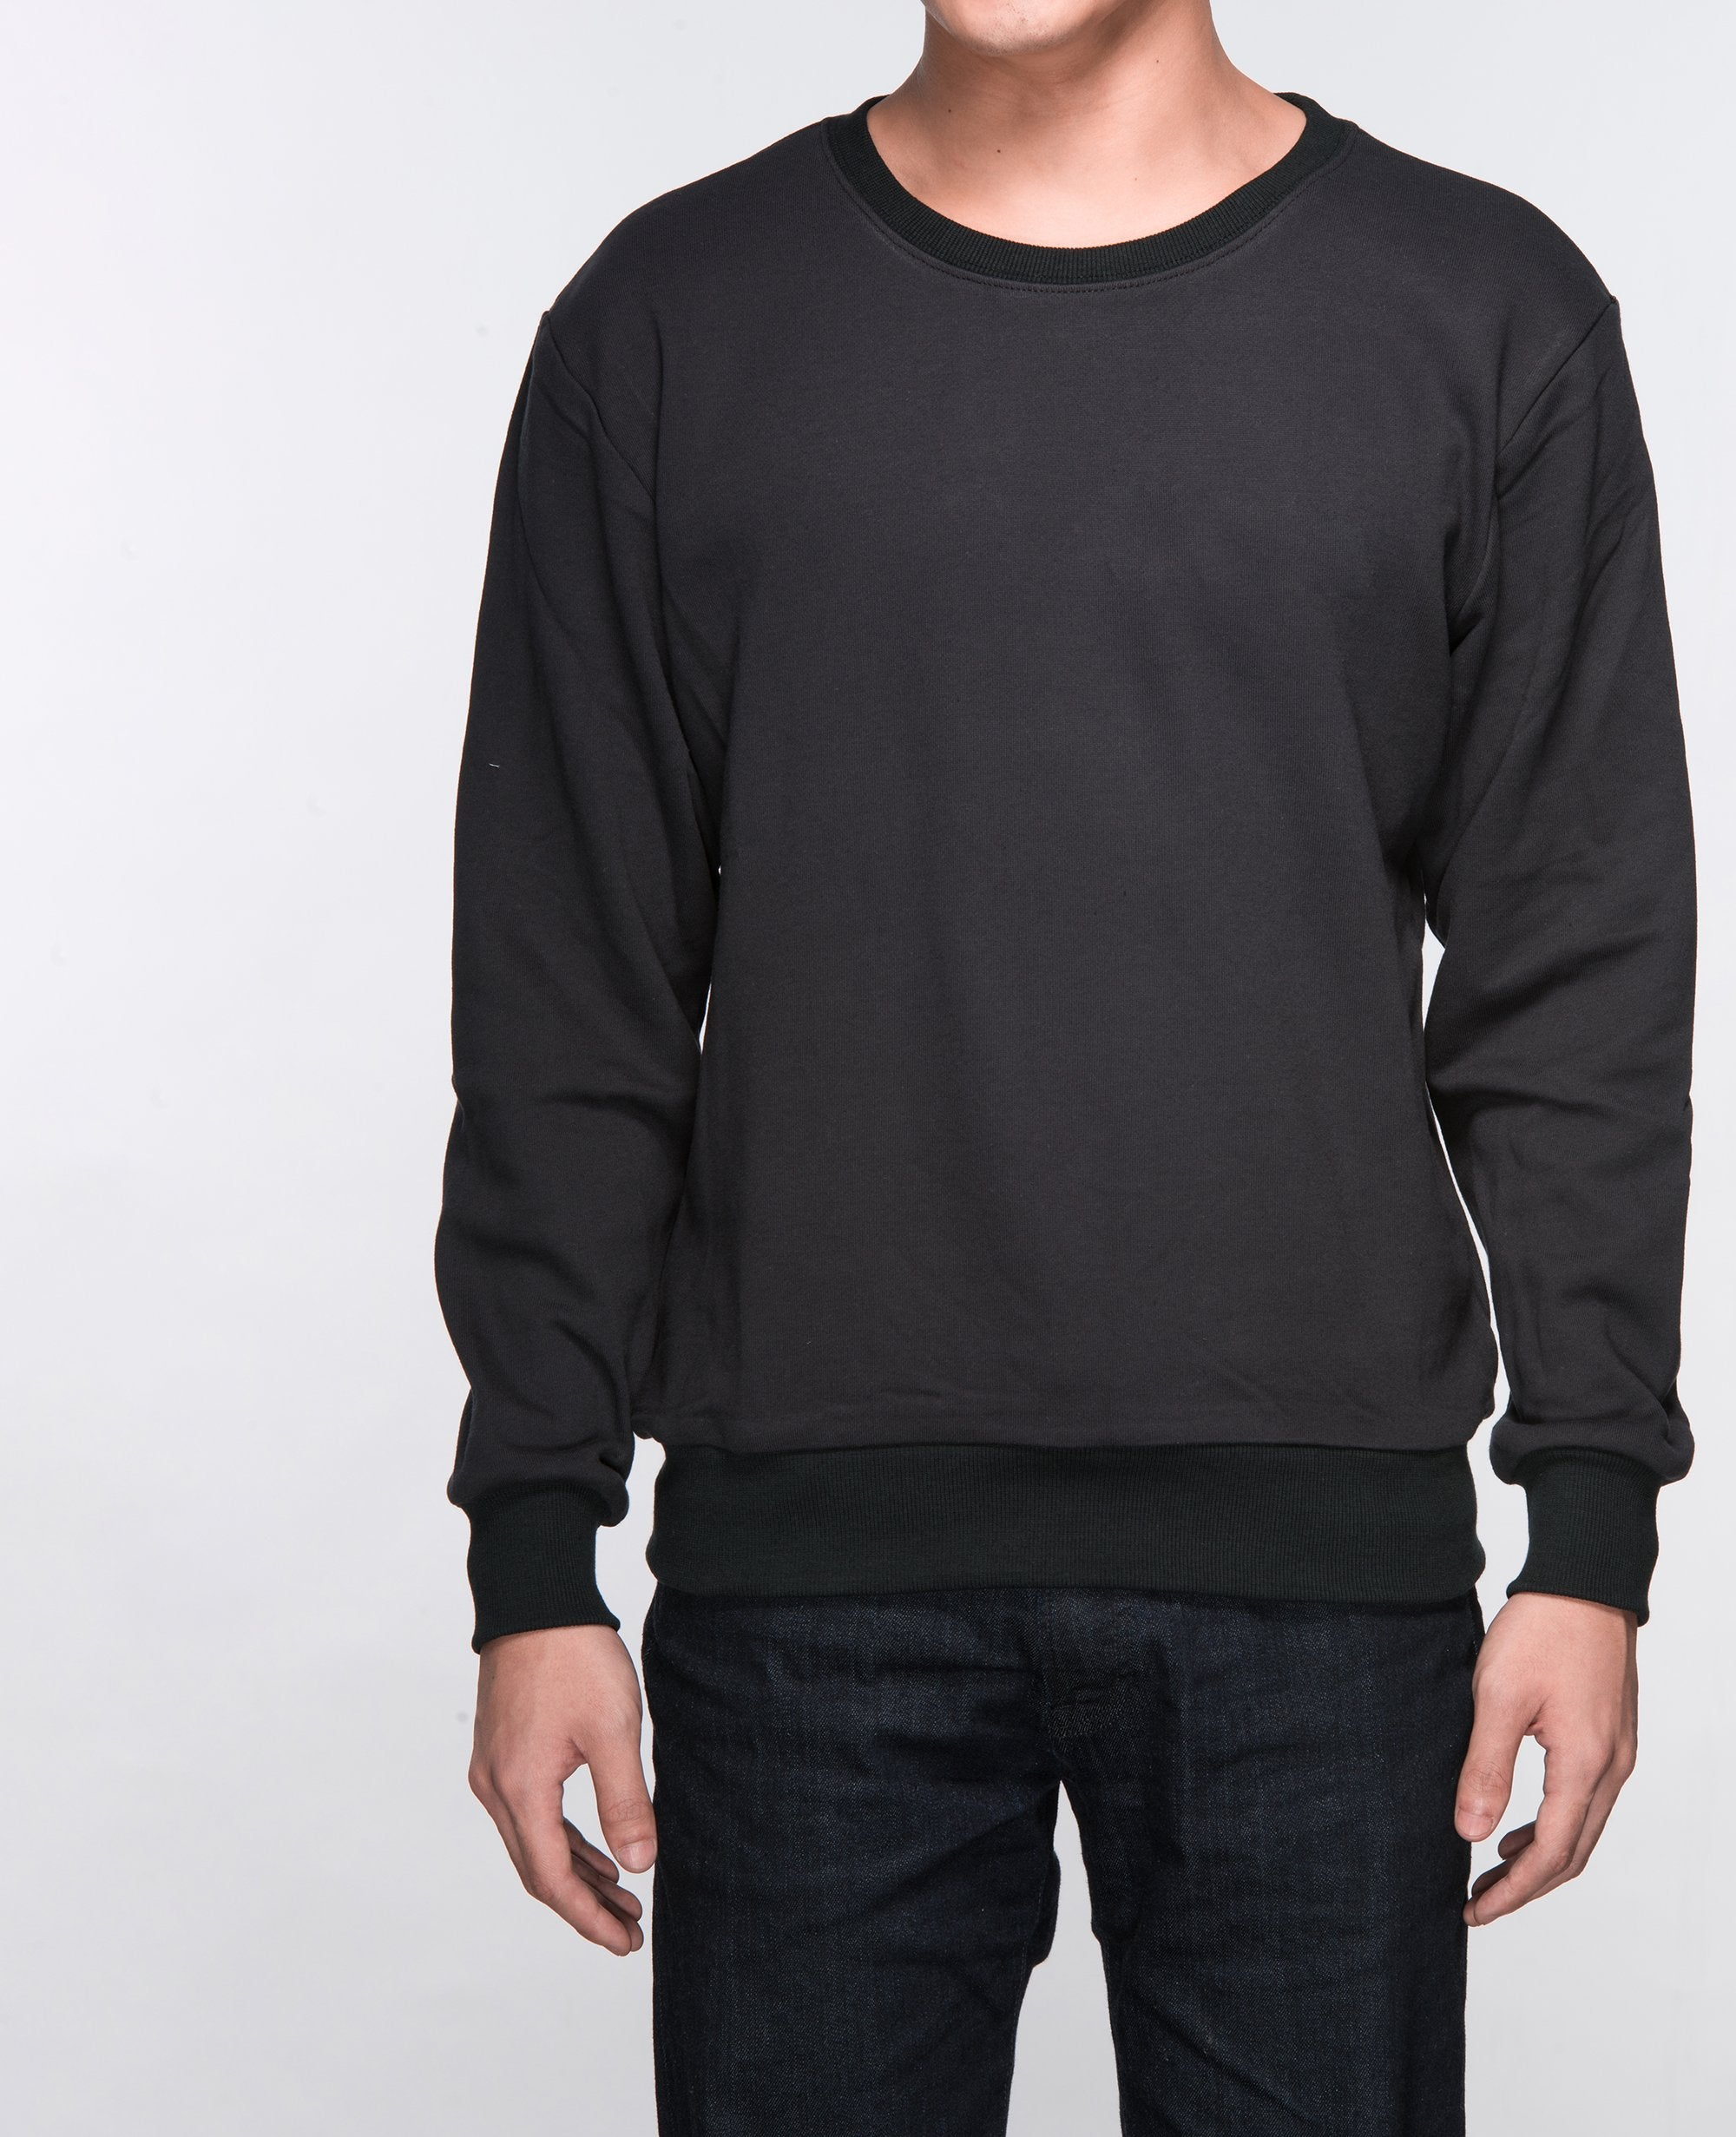 Unisex Basic Sweatshirt in Black - Sweater - BRANMA - BRANMA